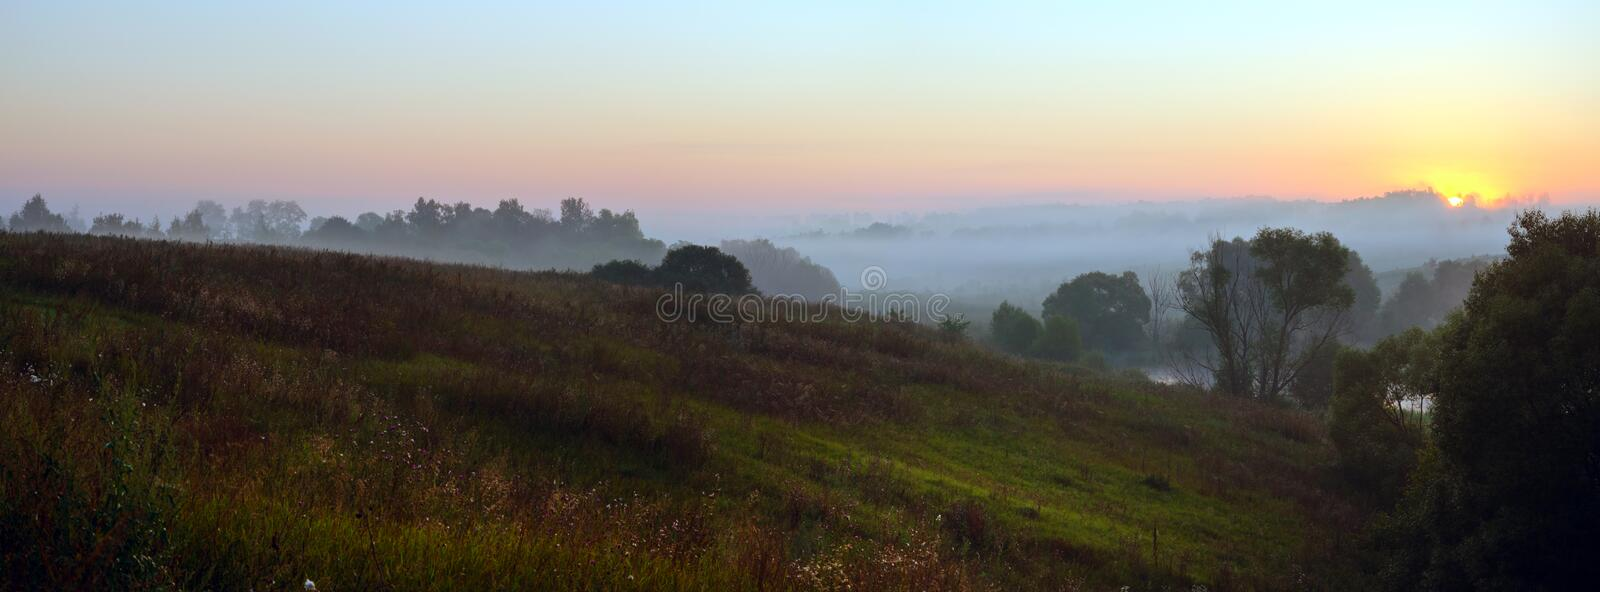 Tranquil panoramic landscape with trees and hills covered by morning fog. Beautiful panorama of foggy hills on a background of rising sun royalty free stock photography